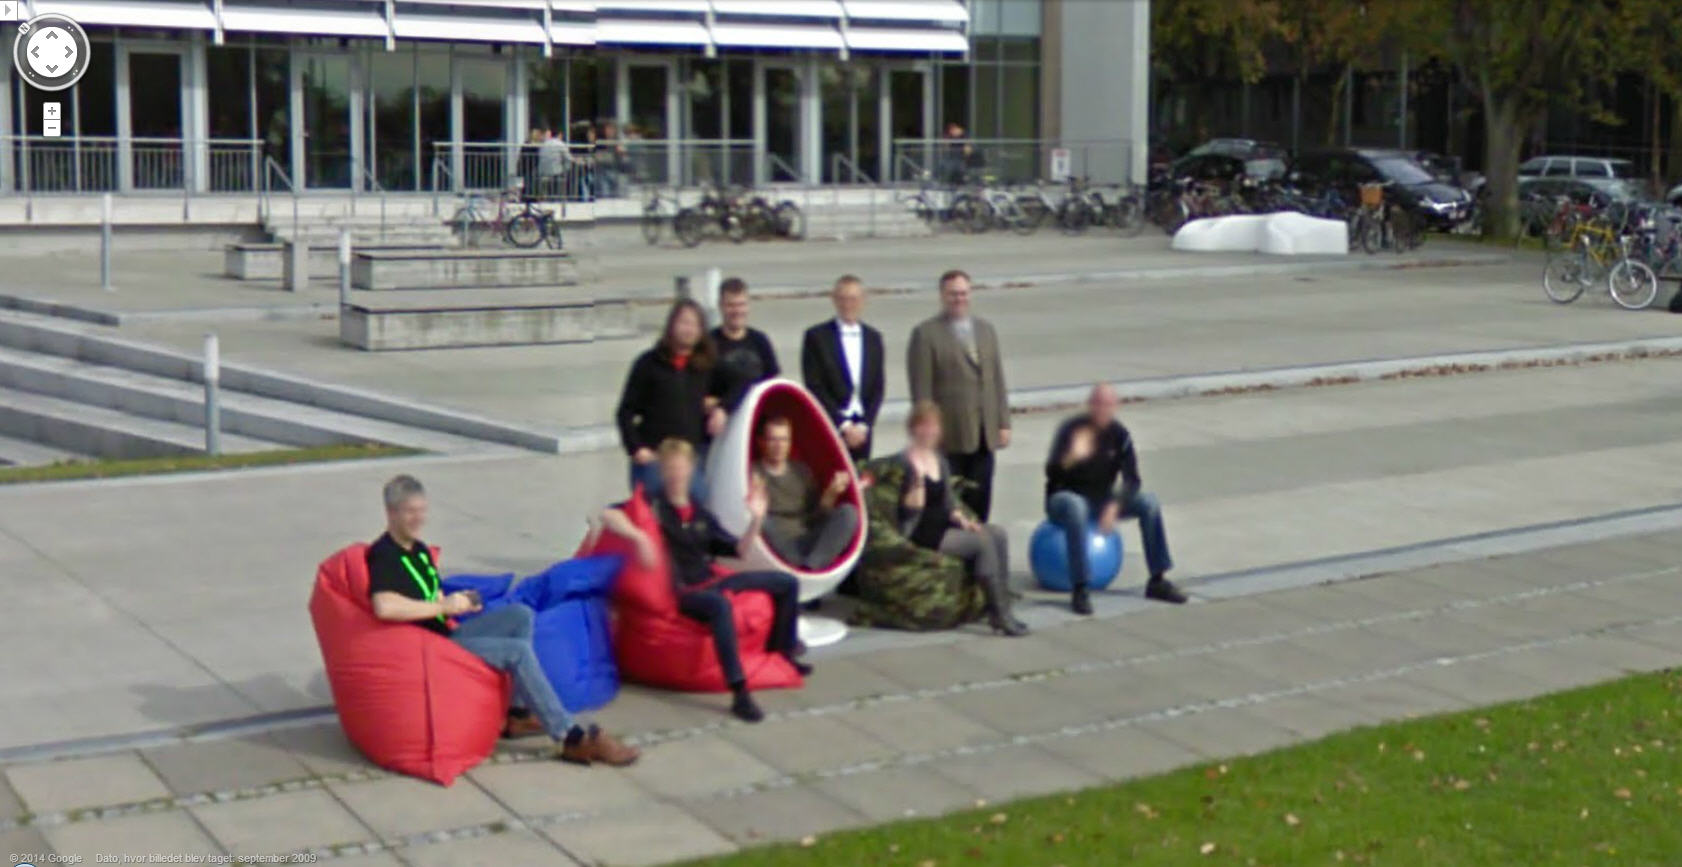 Danish people posing for Google Street View